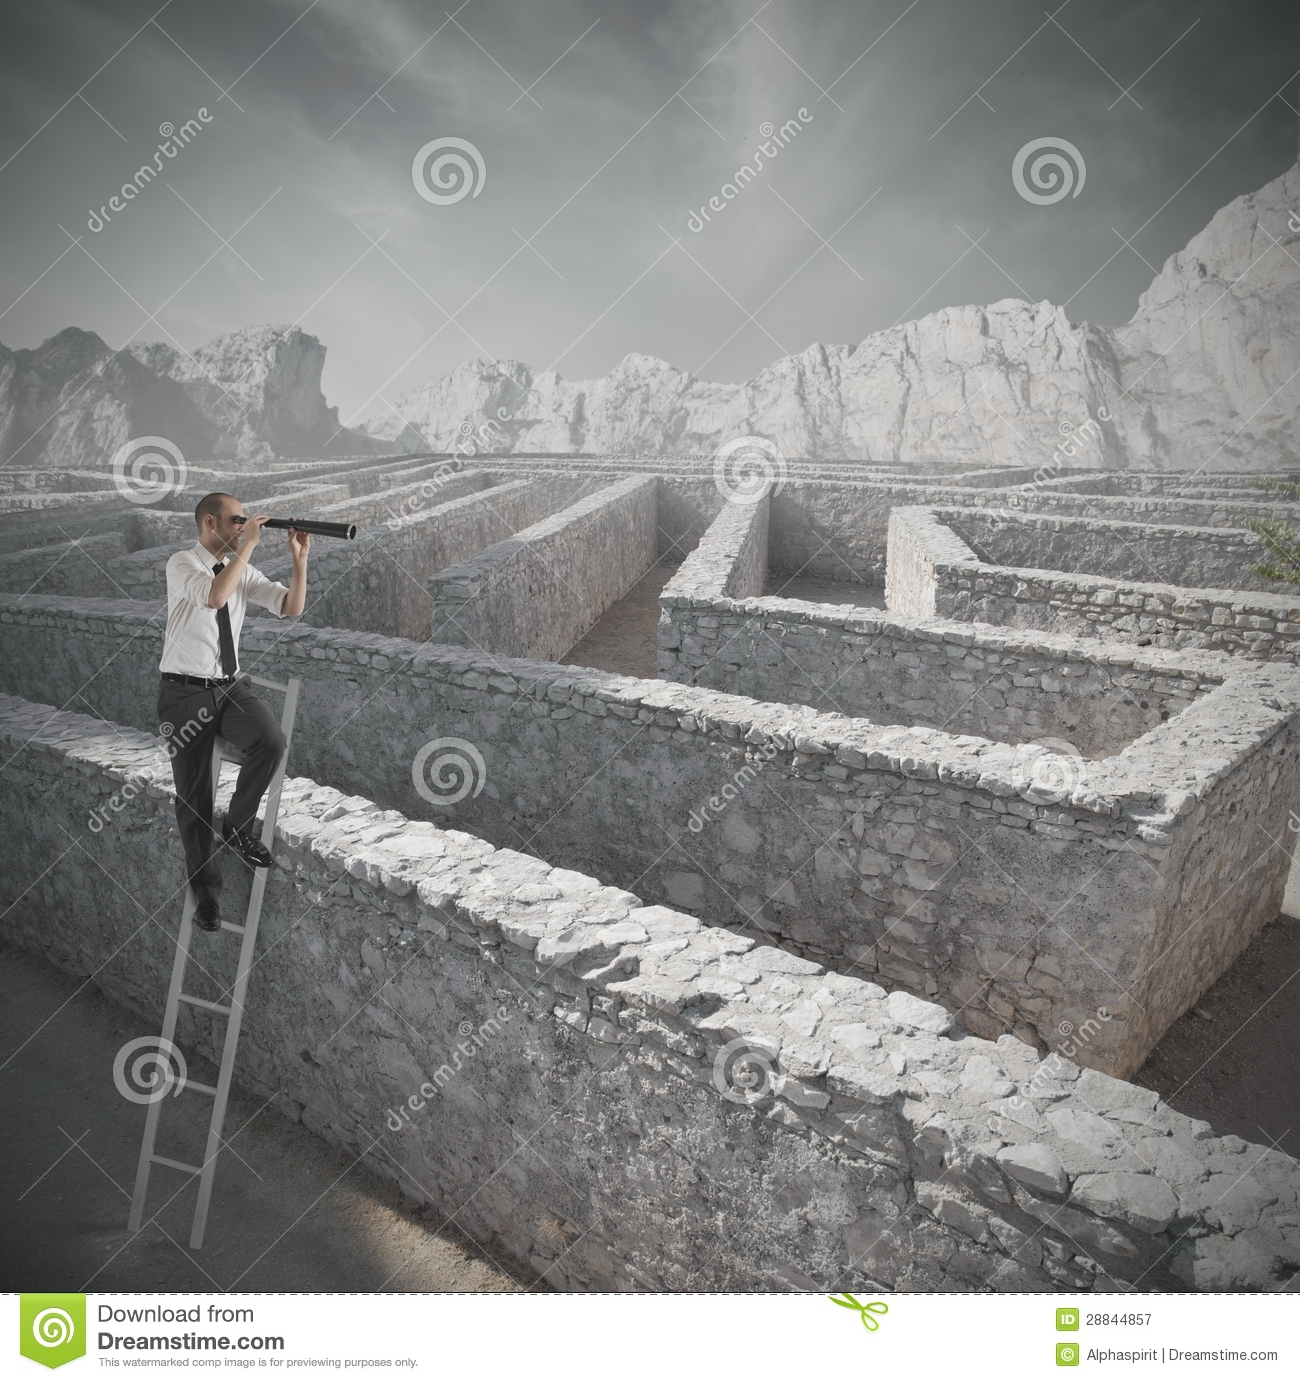 Looking for the solution to the maze